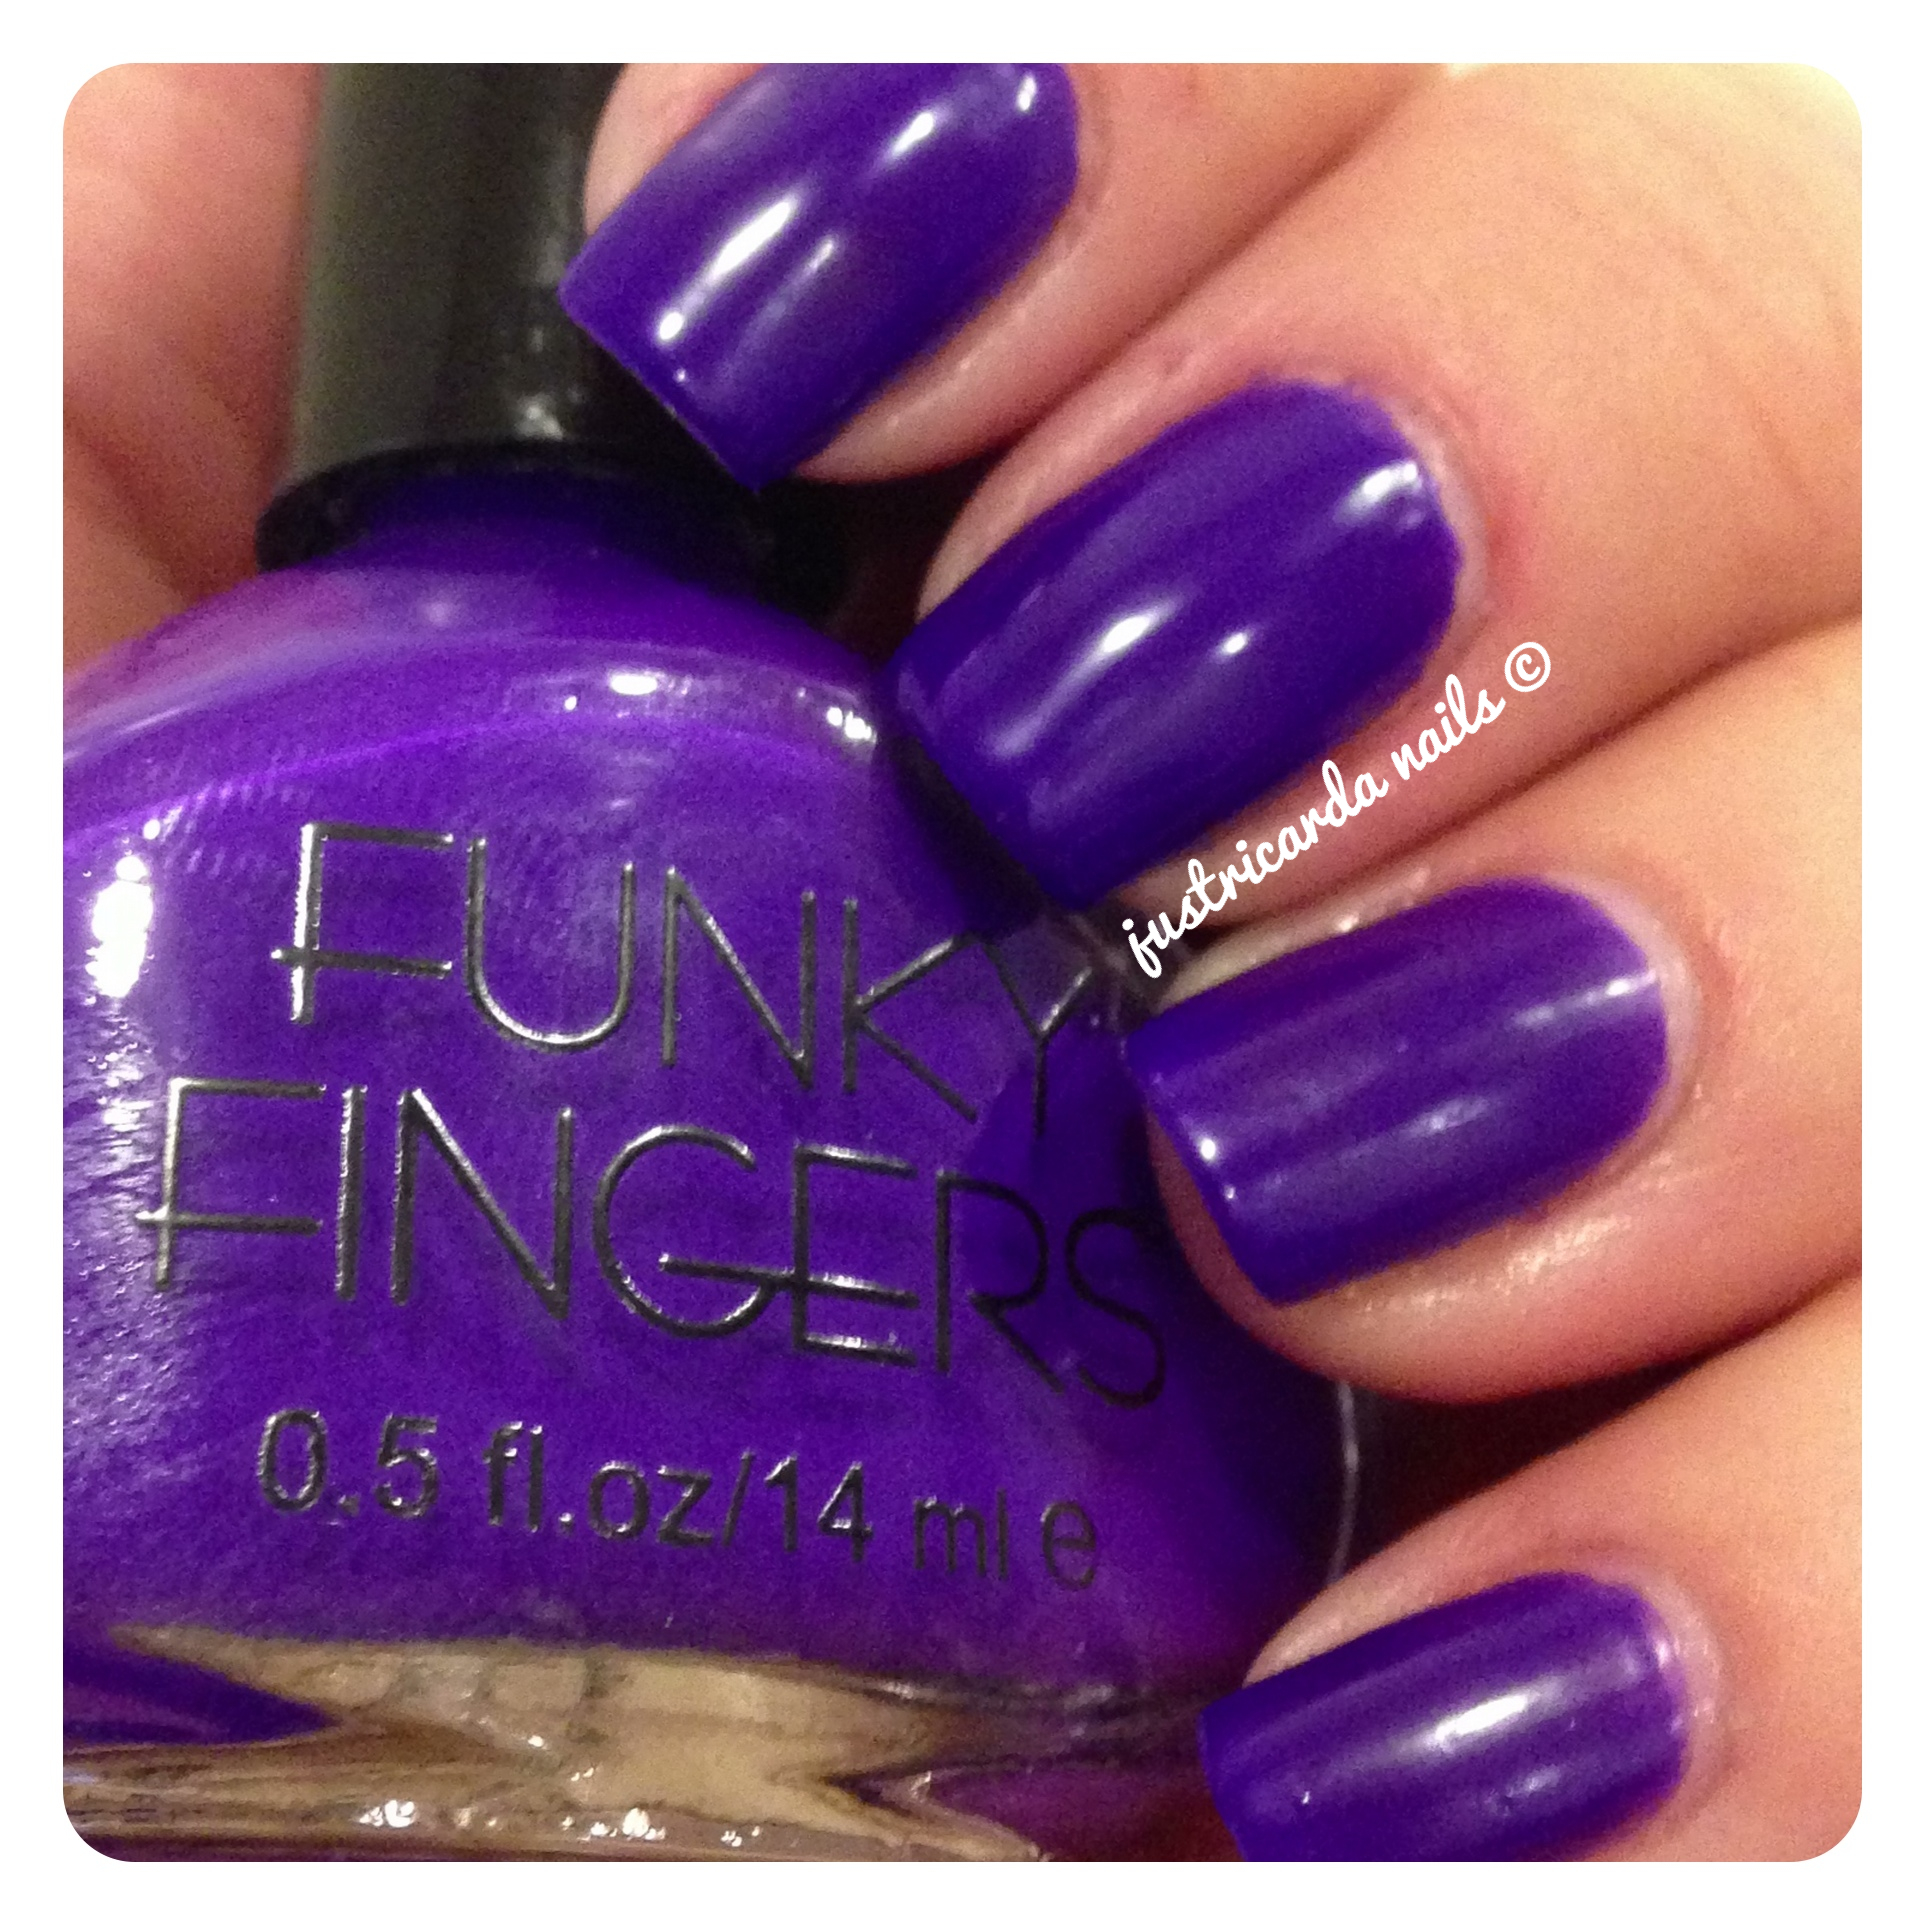 Funky Fingers | justricarda